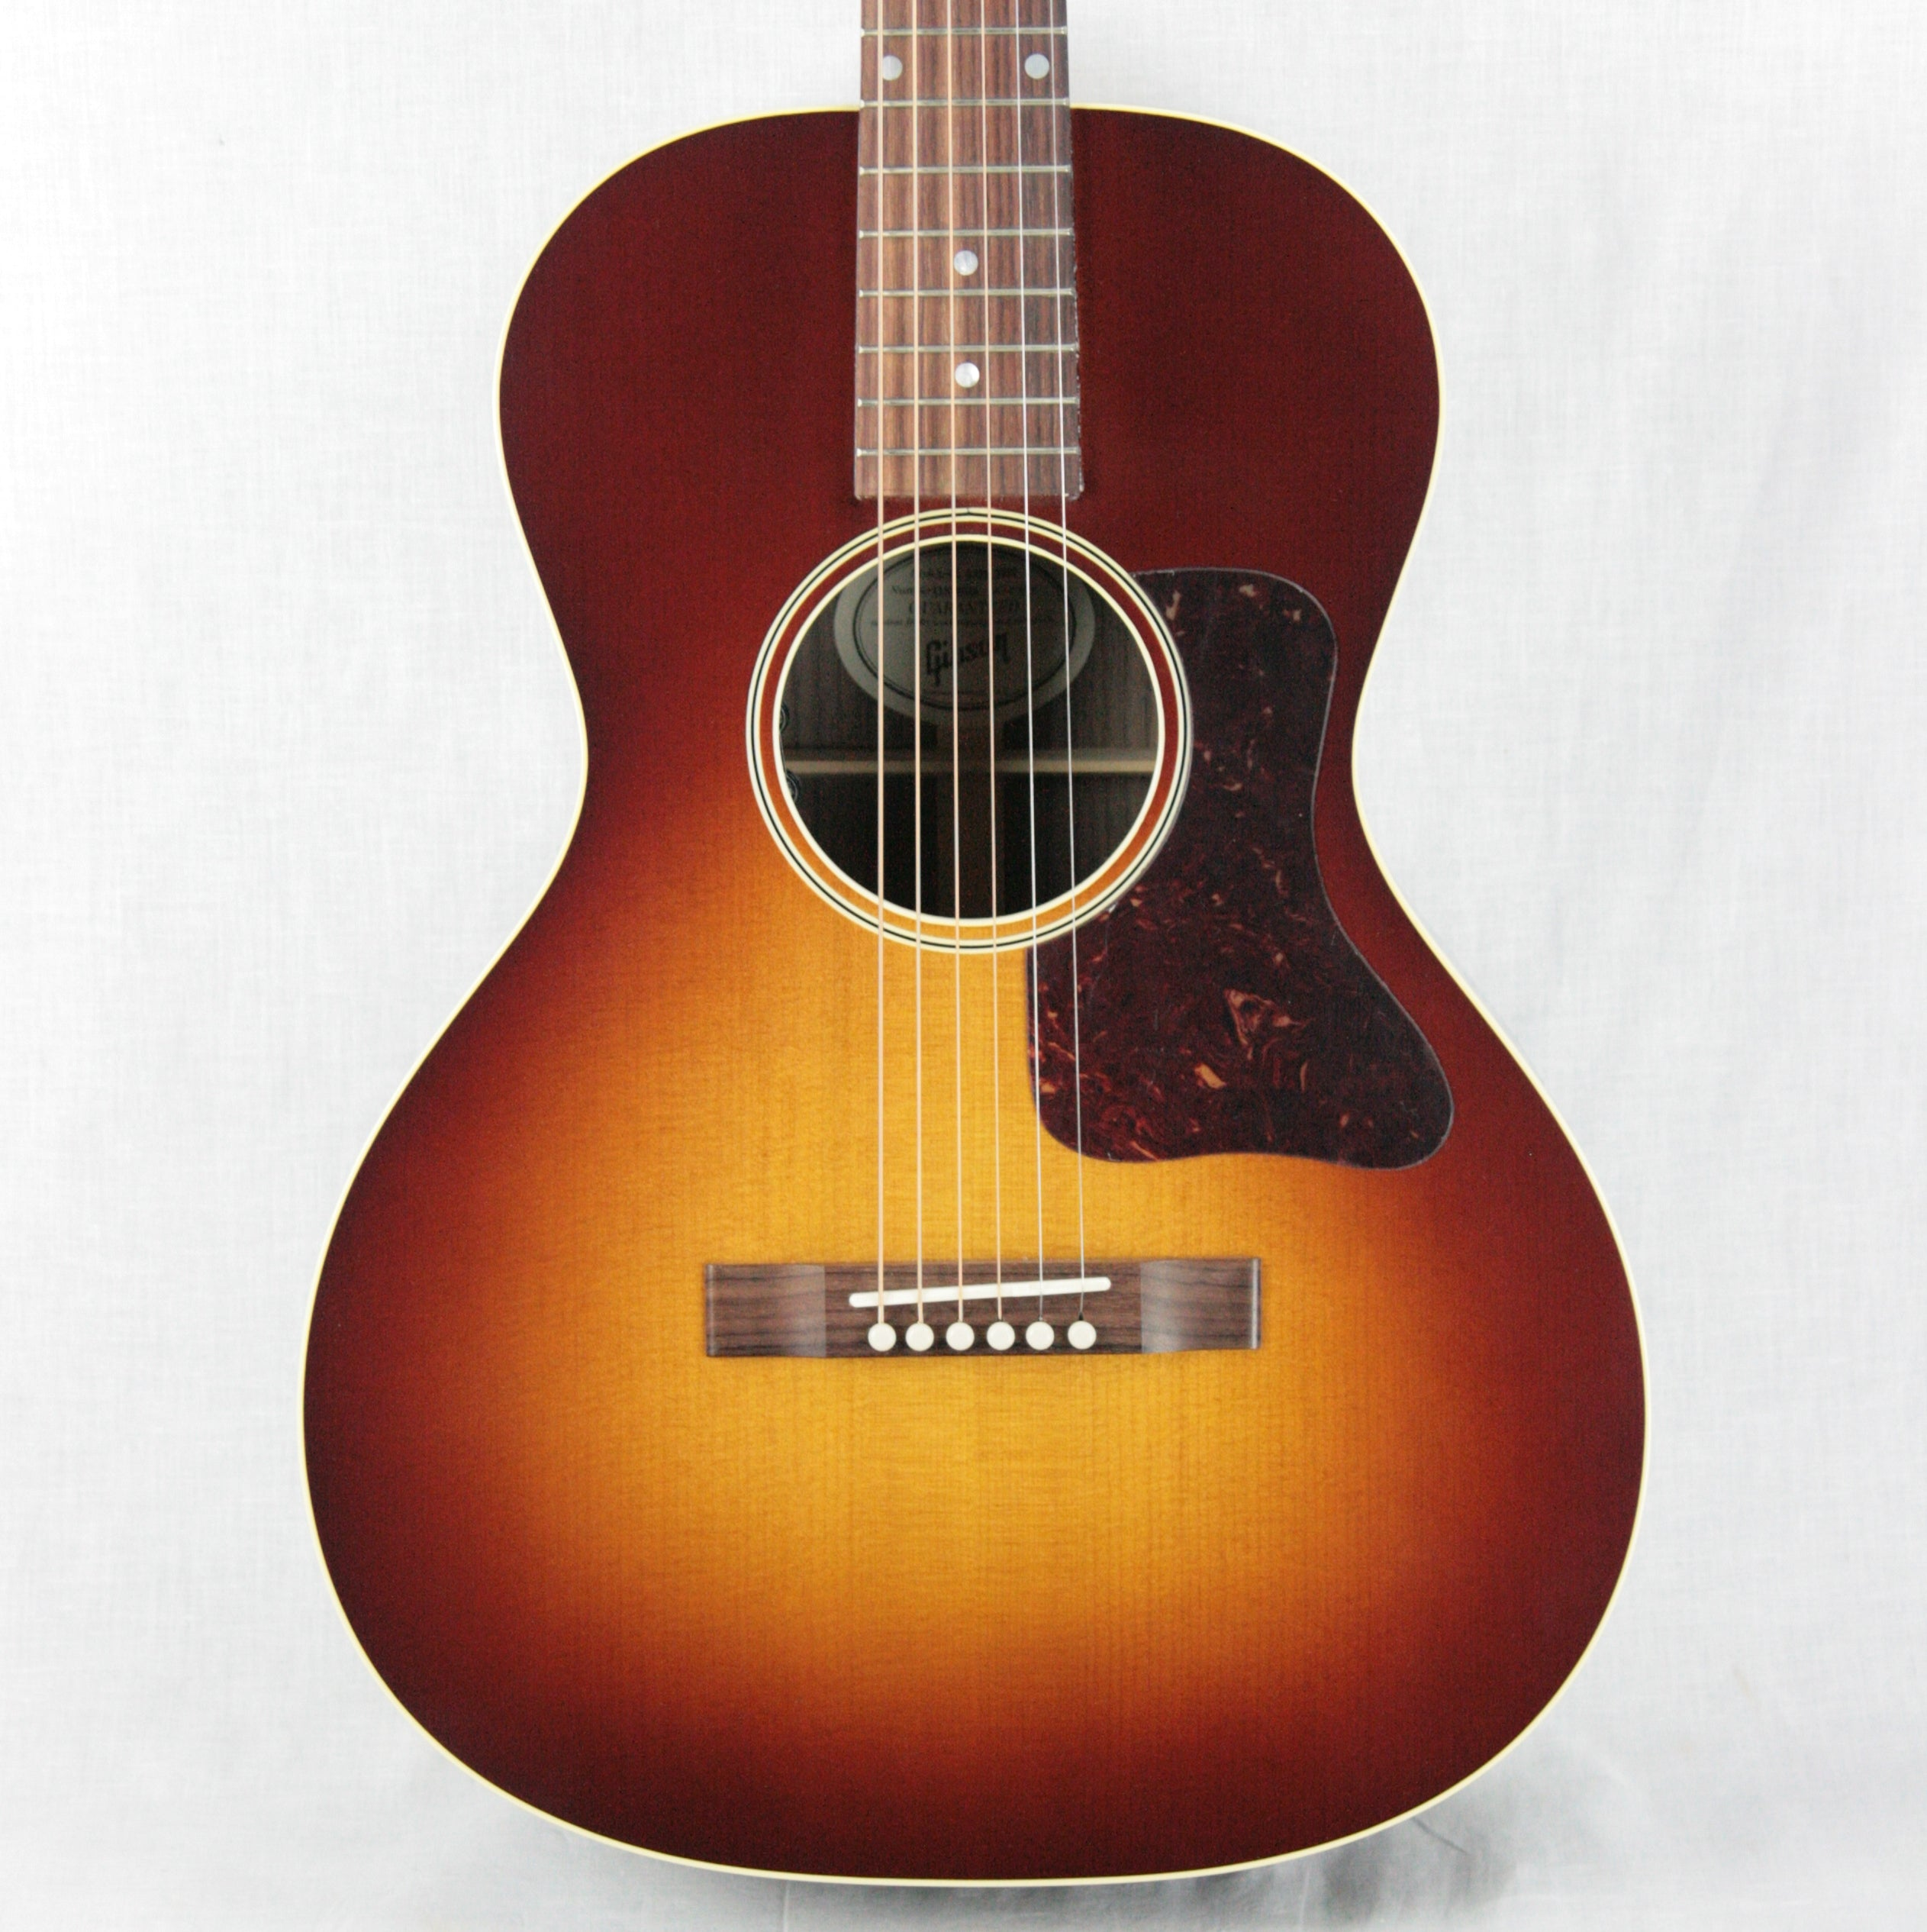 2018 Gibson L-00 12-Fret Rosewood Small Body Acoustic Guitar! Sunburst!